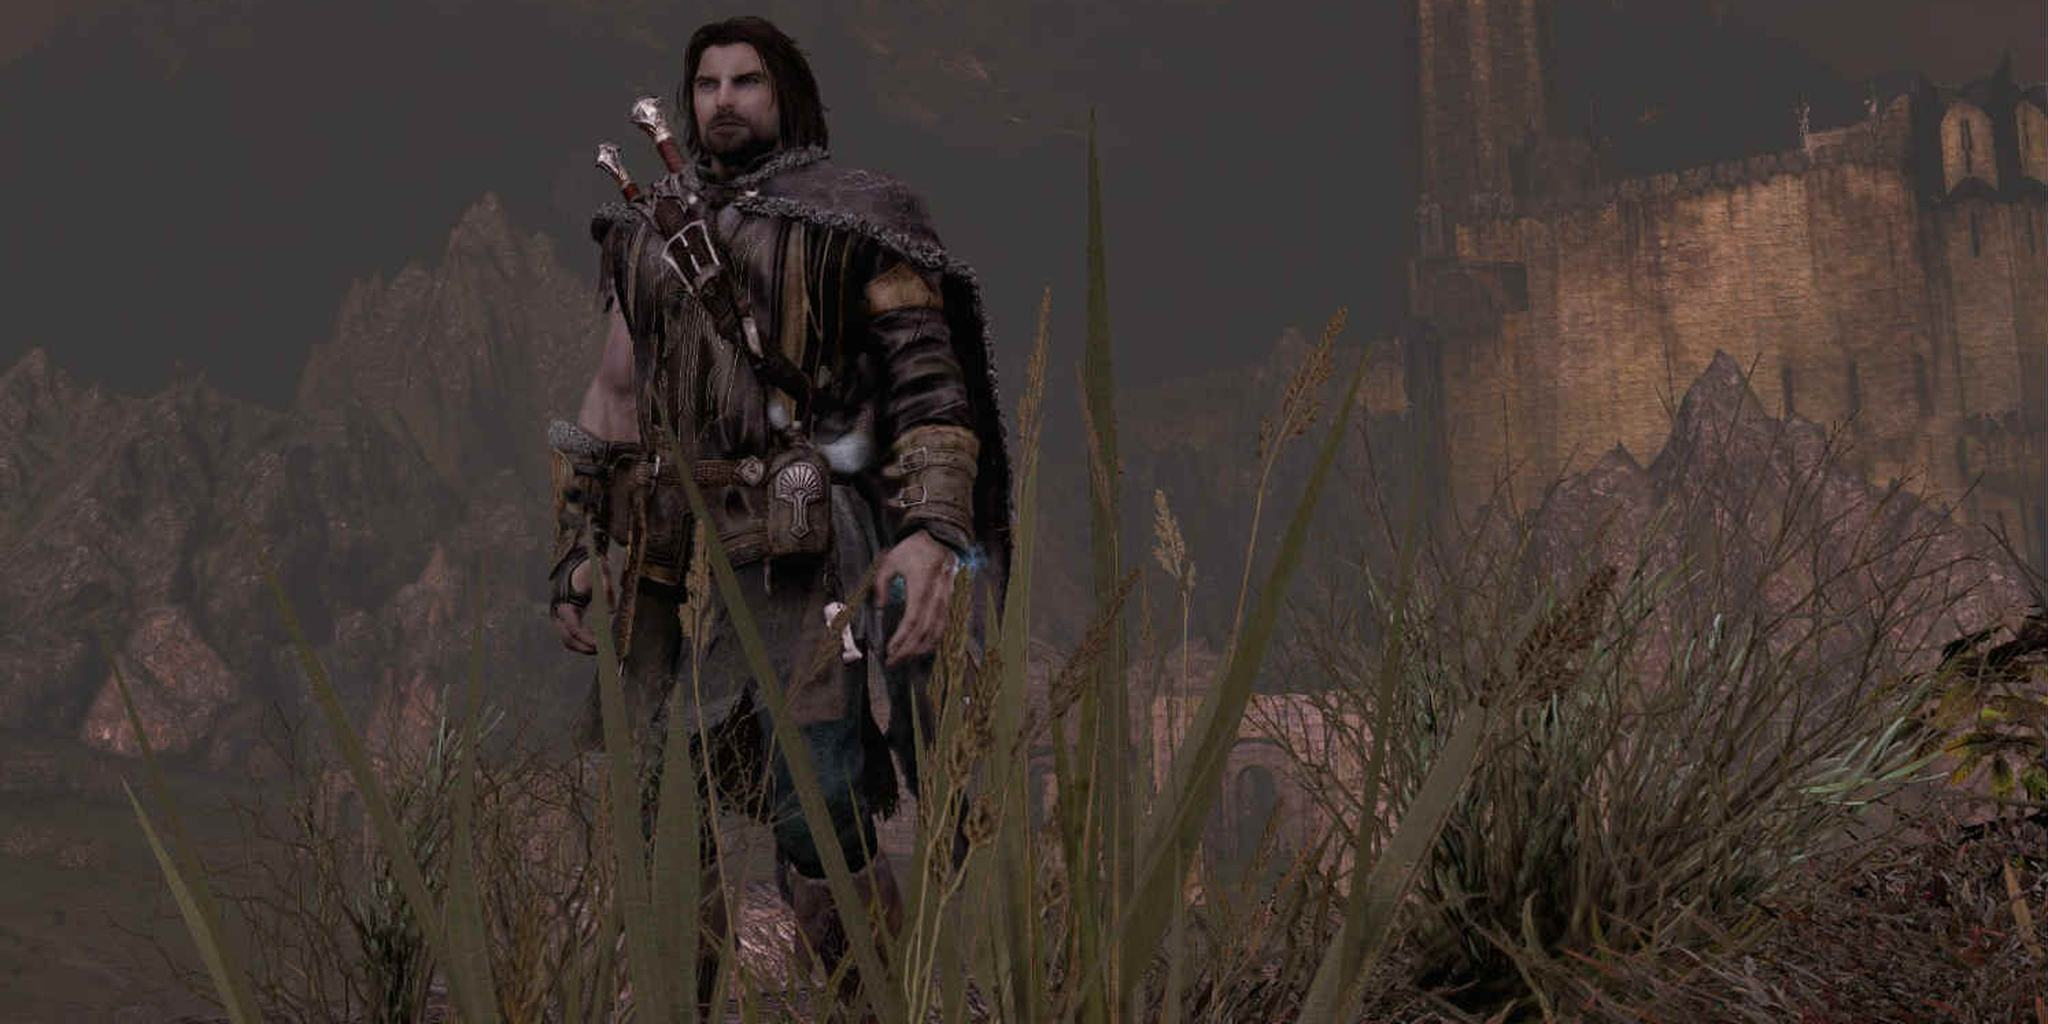 A screenshot of Talion, the hero of Middle-earth: Shadow of Mordor